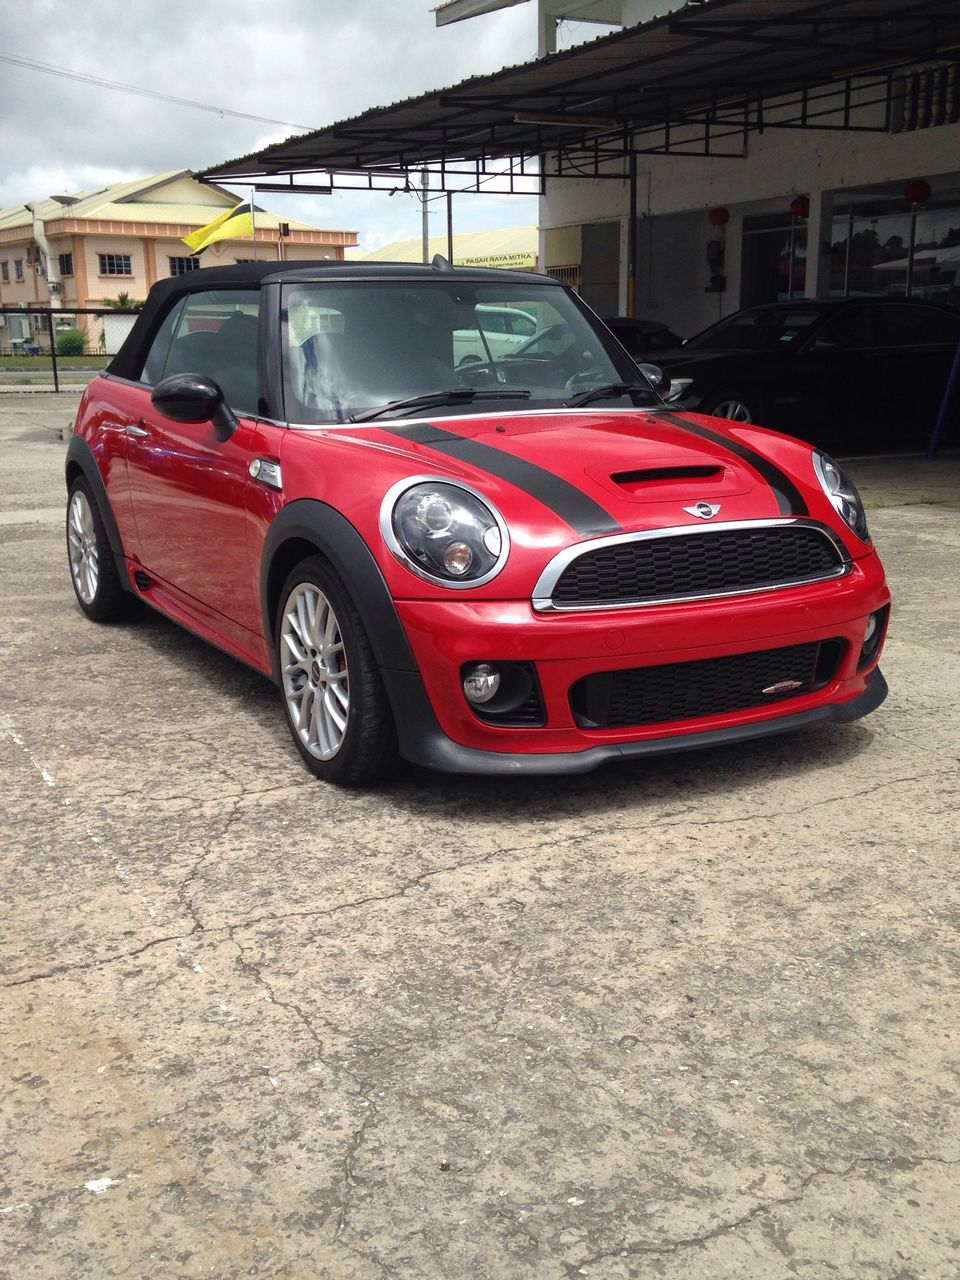 brunei friends ride for sale mini cooper jcw cabriolet r57. Black Bedroom Furniture Sets. Home Design Ideas